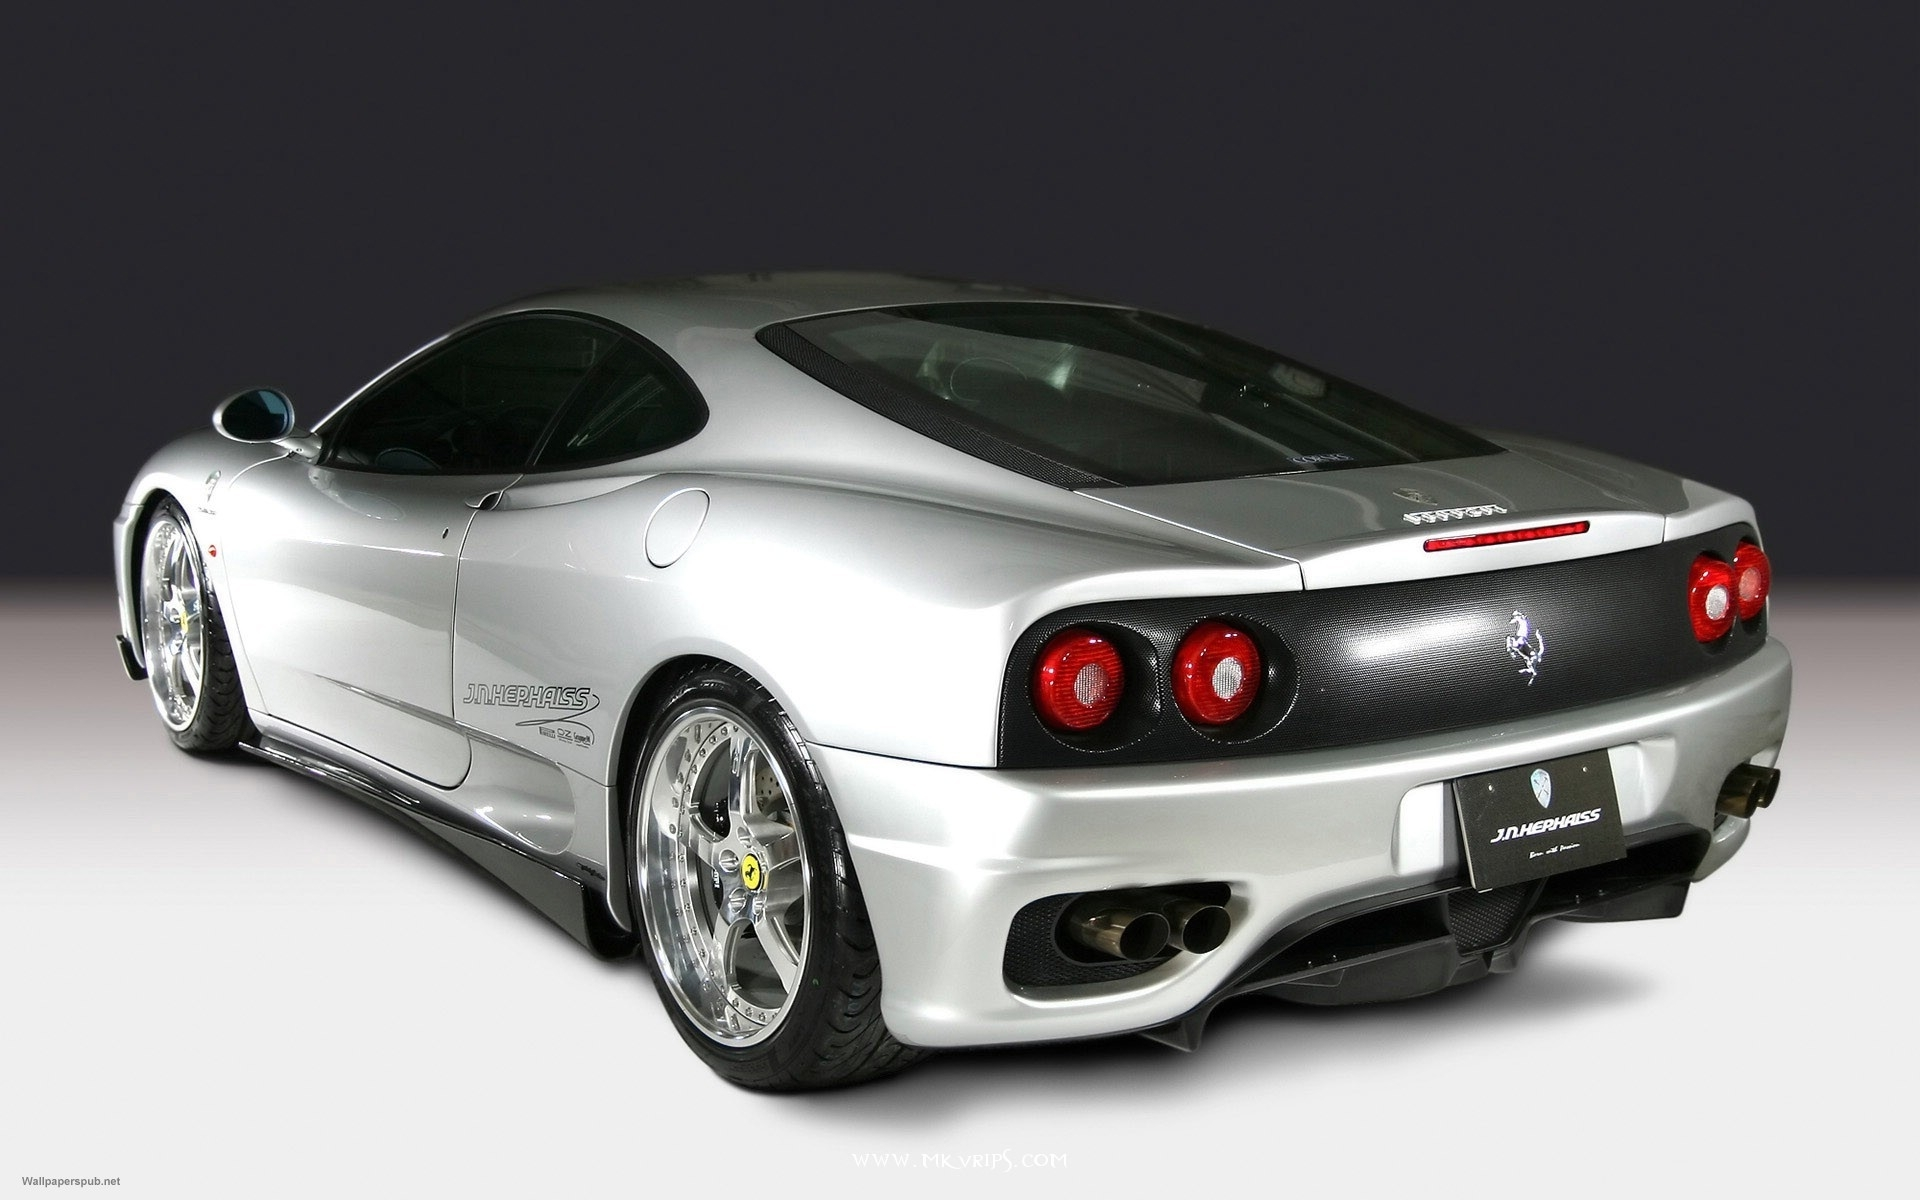 48948 download wallpaper Transport, Auto, Ferrari screensavers and pictures for free